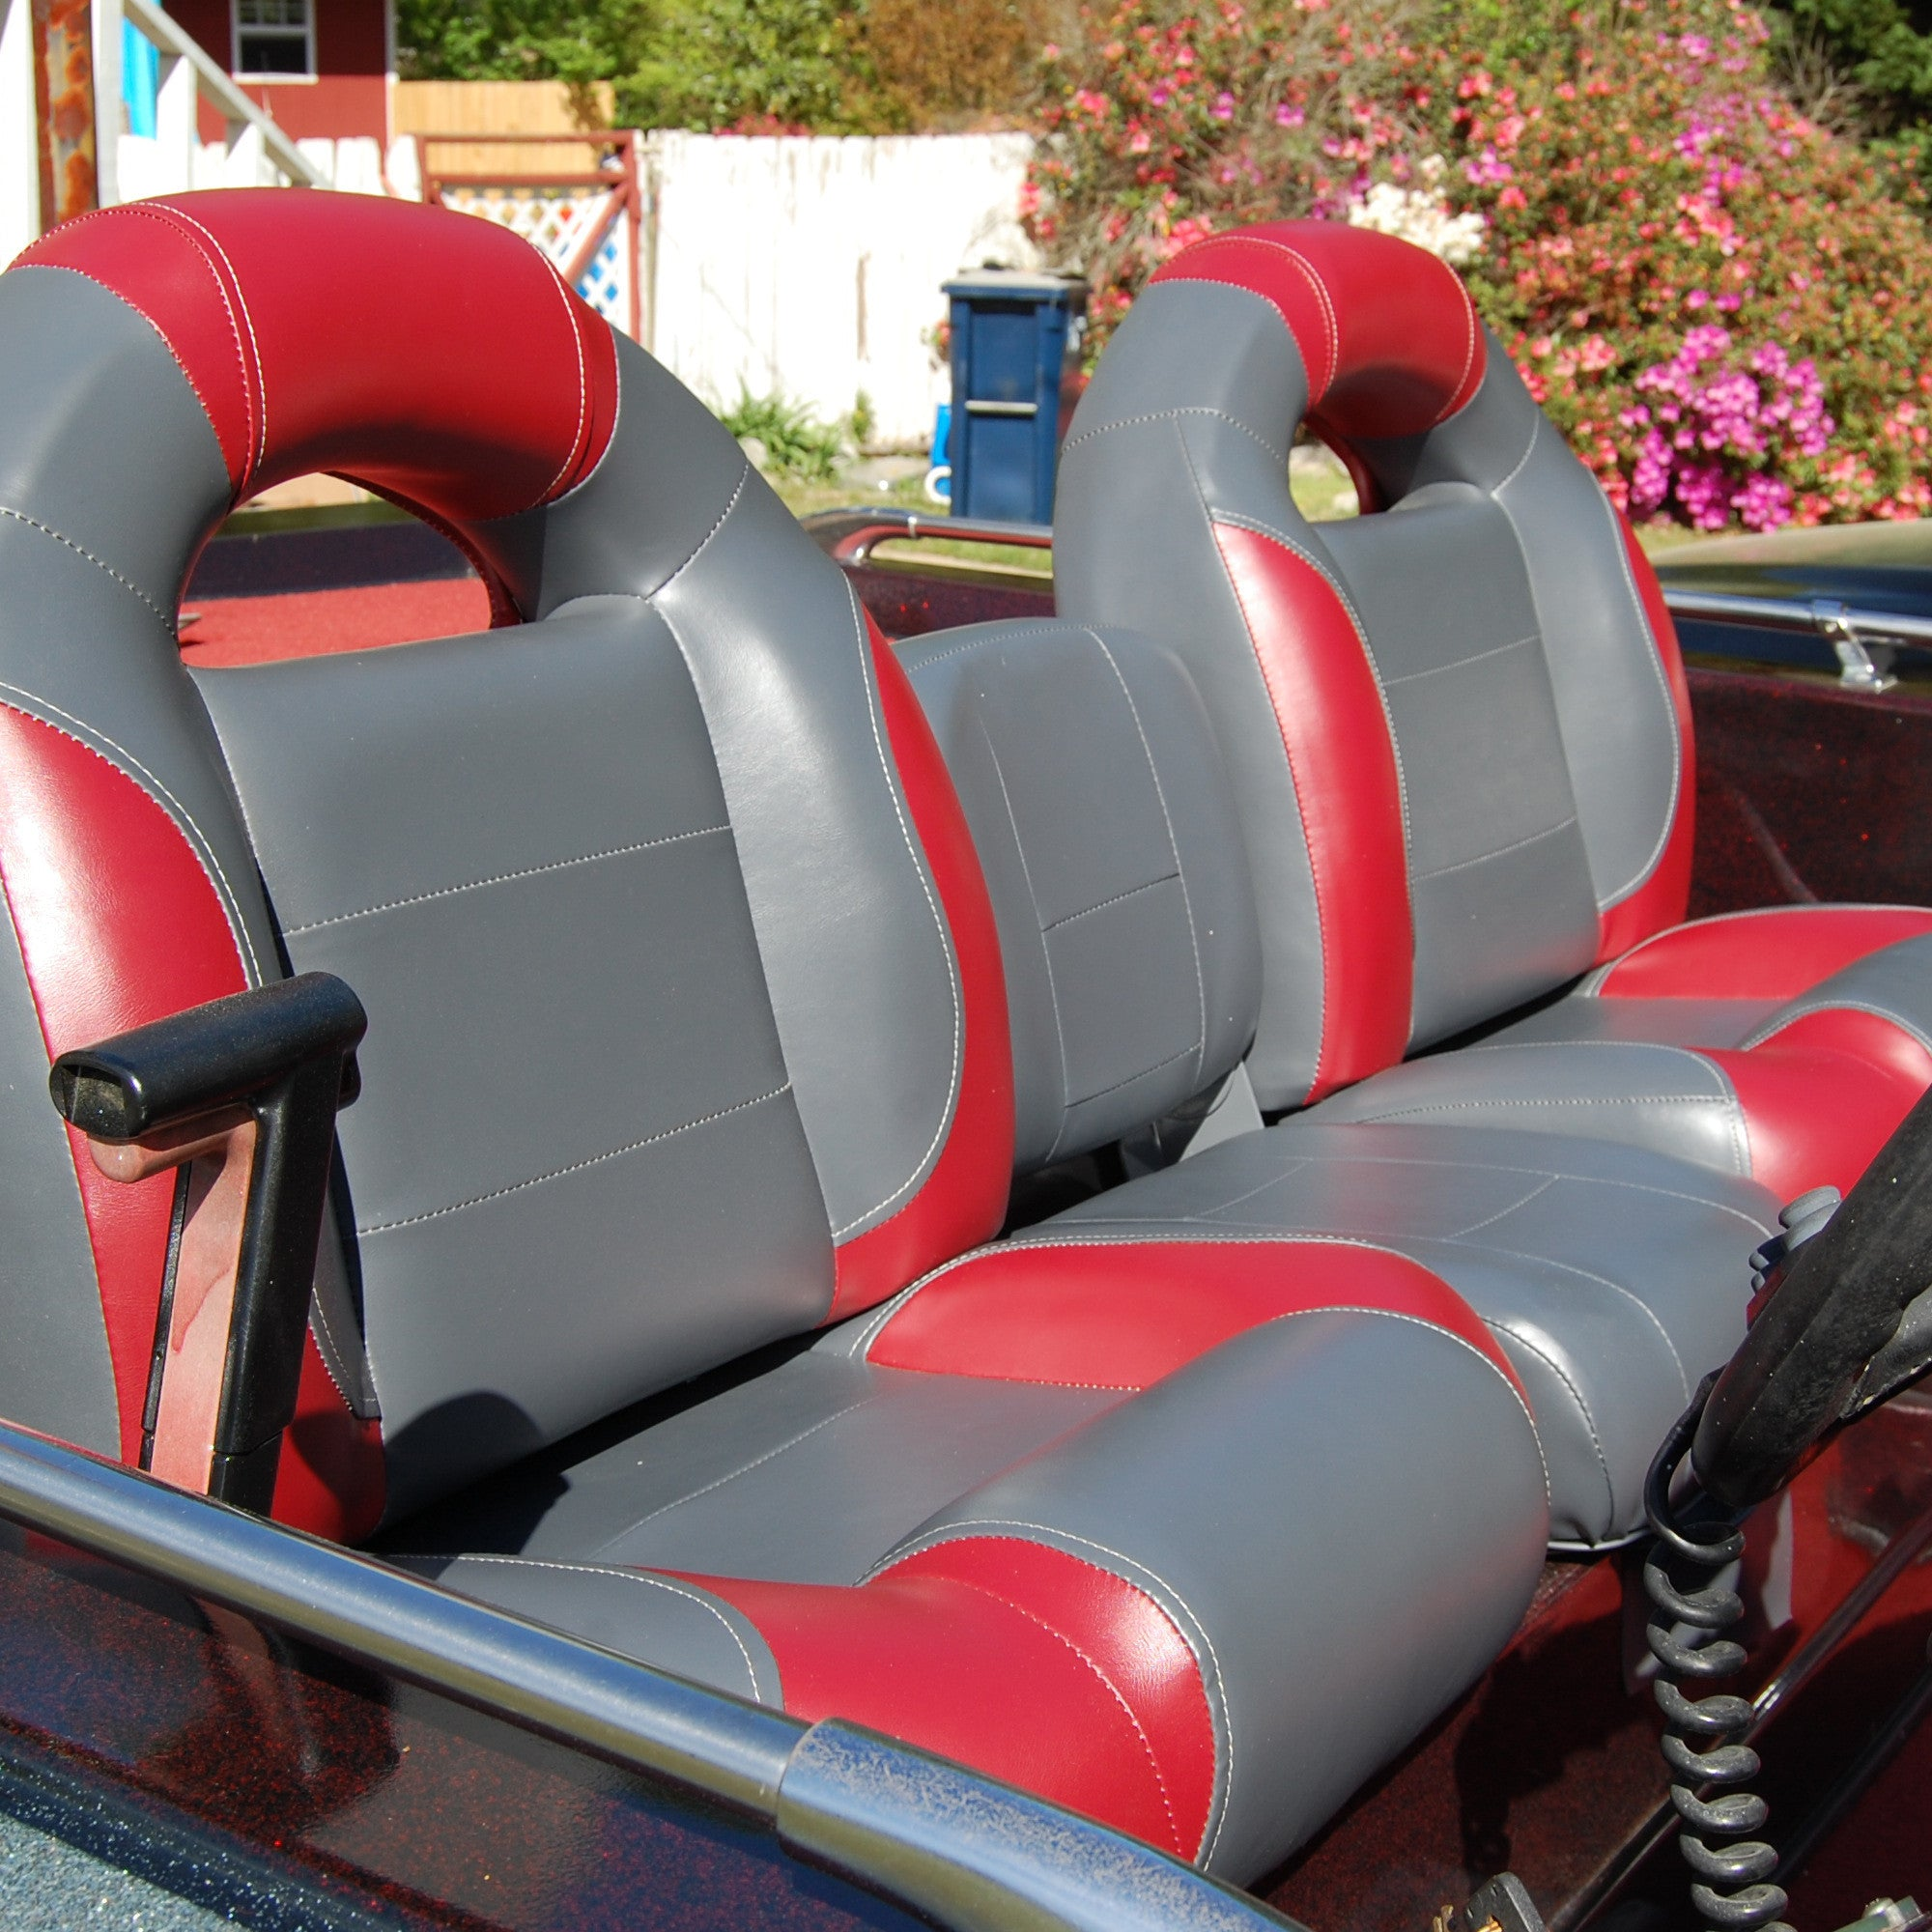 products procraft bass interior seats seat pedestal boat